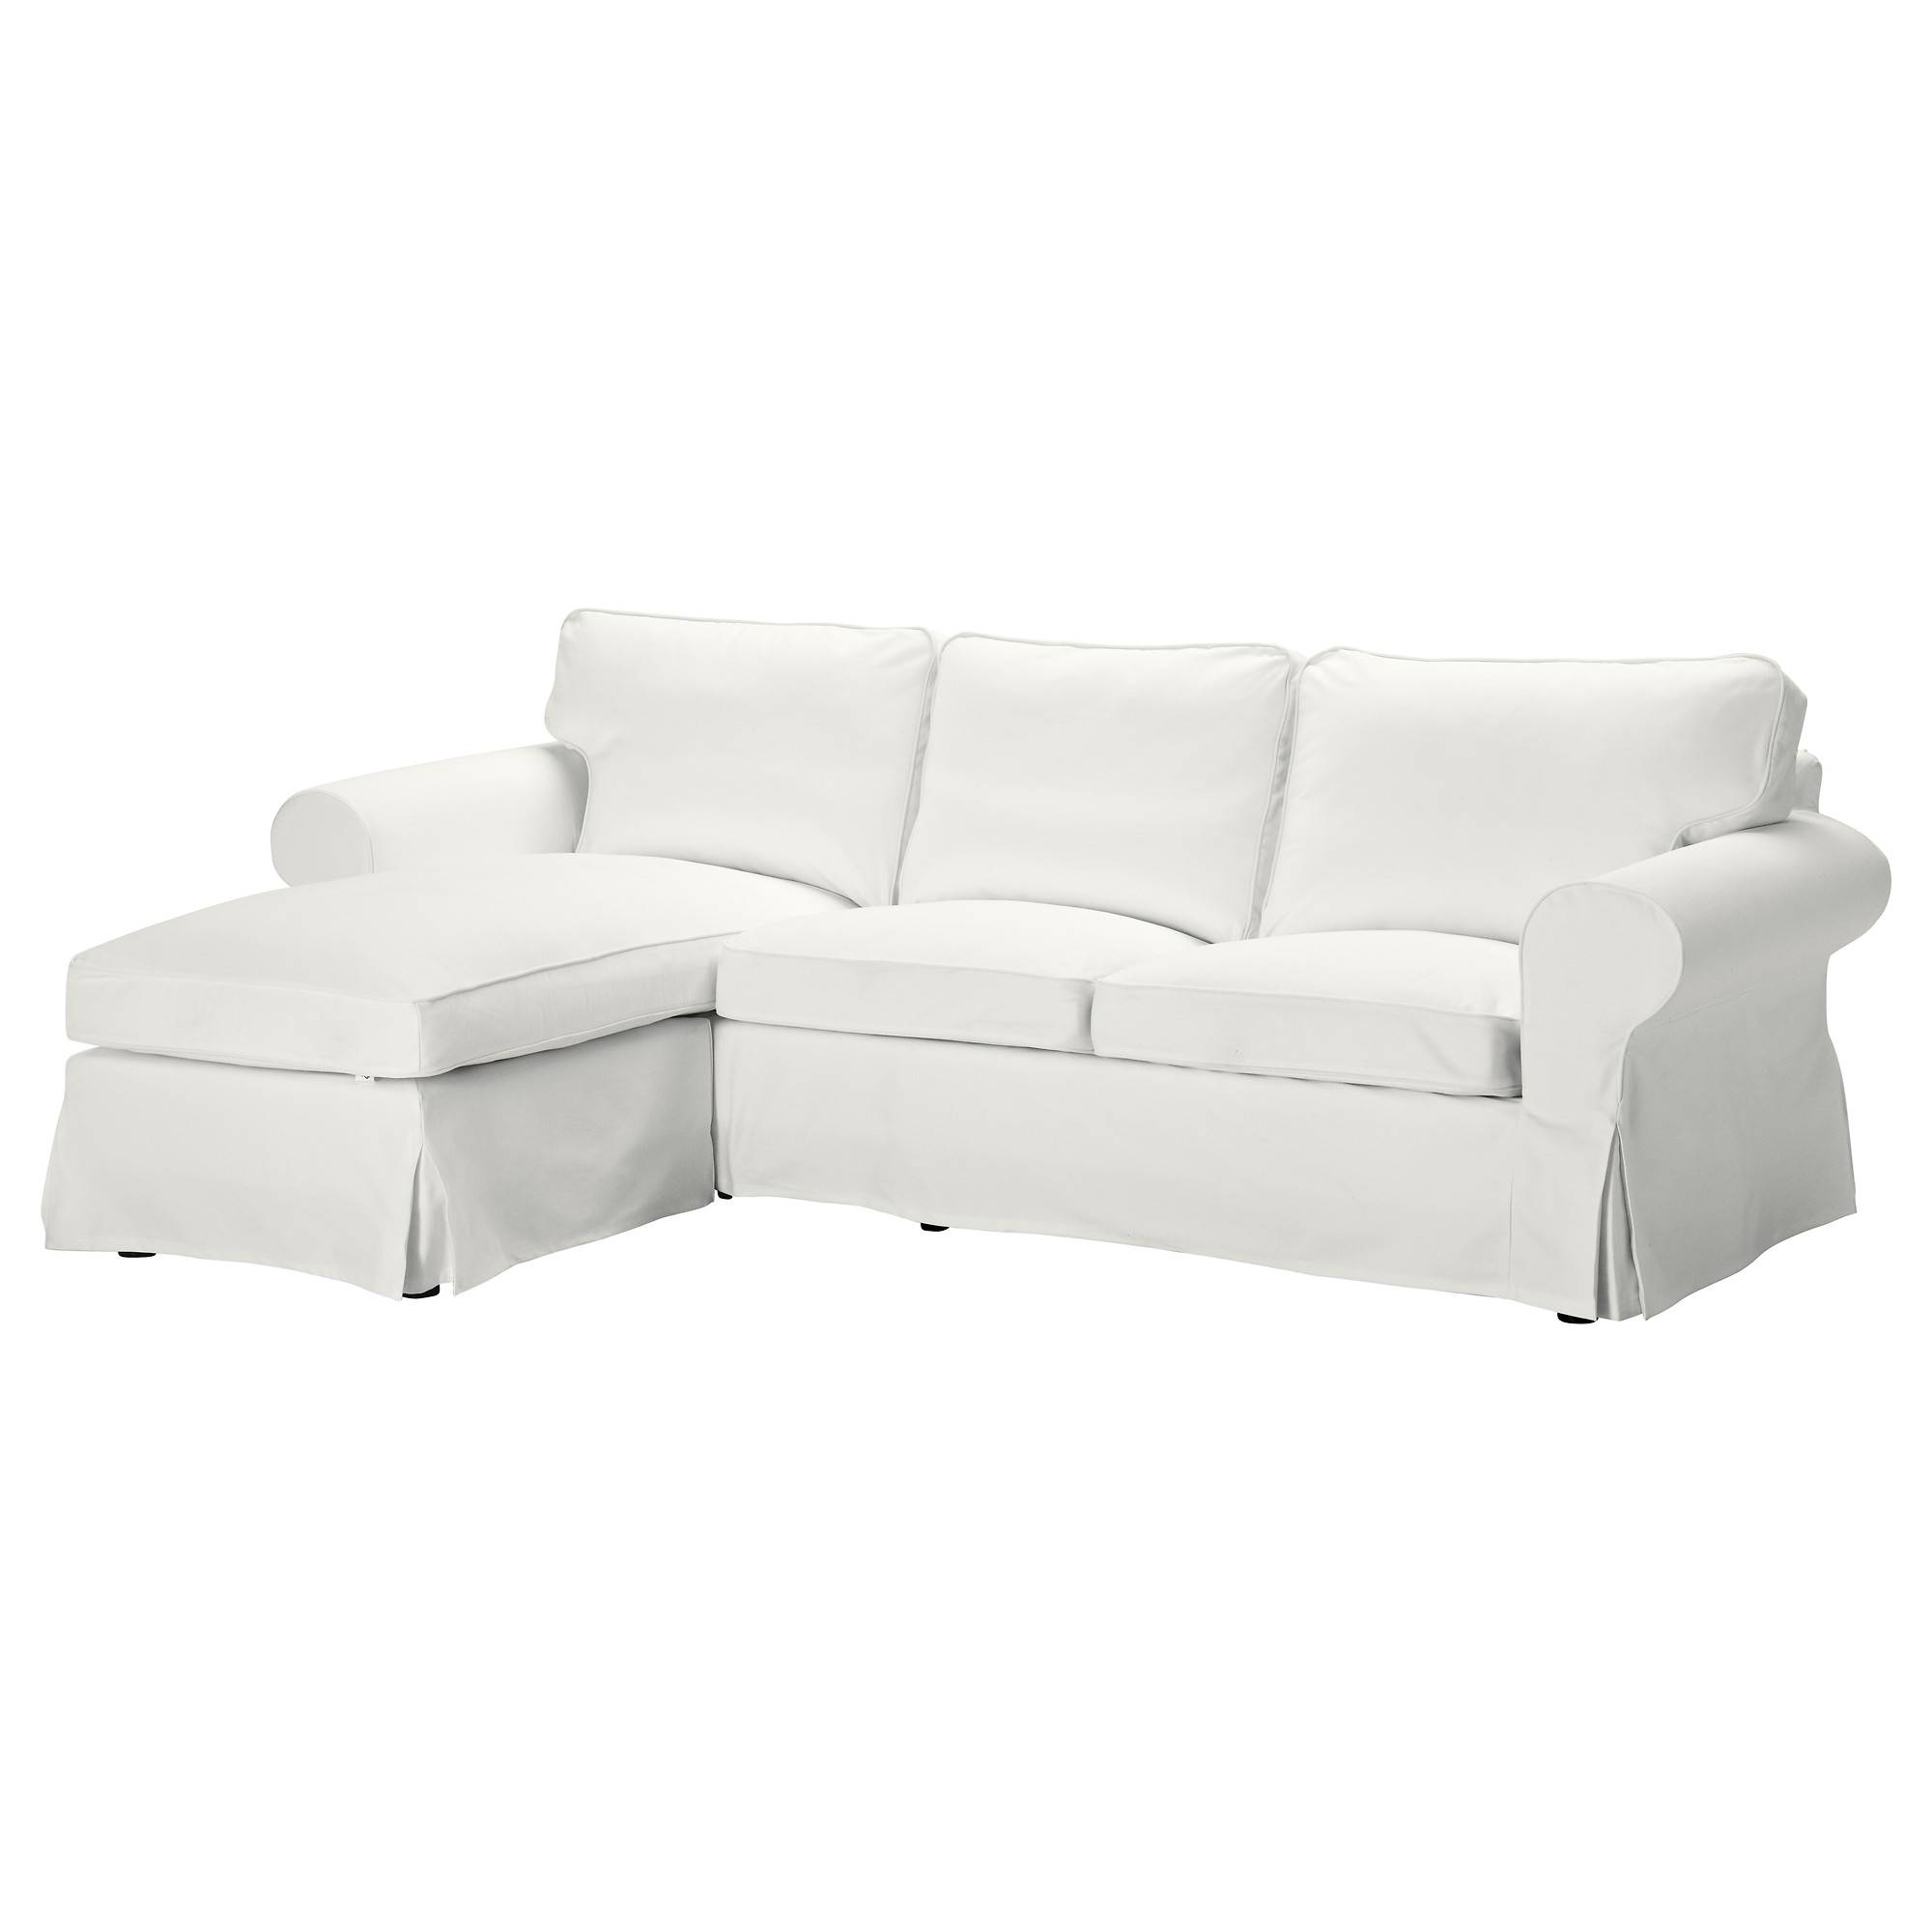 Ektorp Two-Seat Sofa And Chaise Longue Blekinge White - Ikea regarding Ikea Two Seater Sofas (Image 2 of 30)